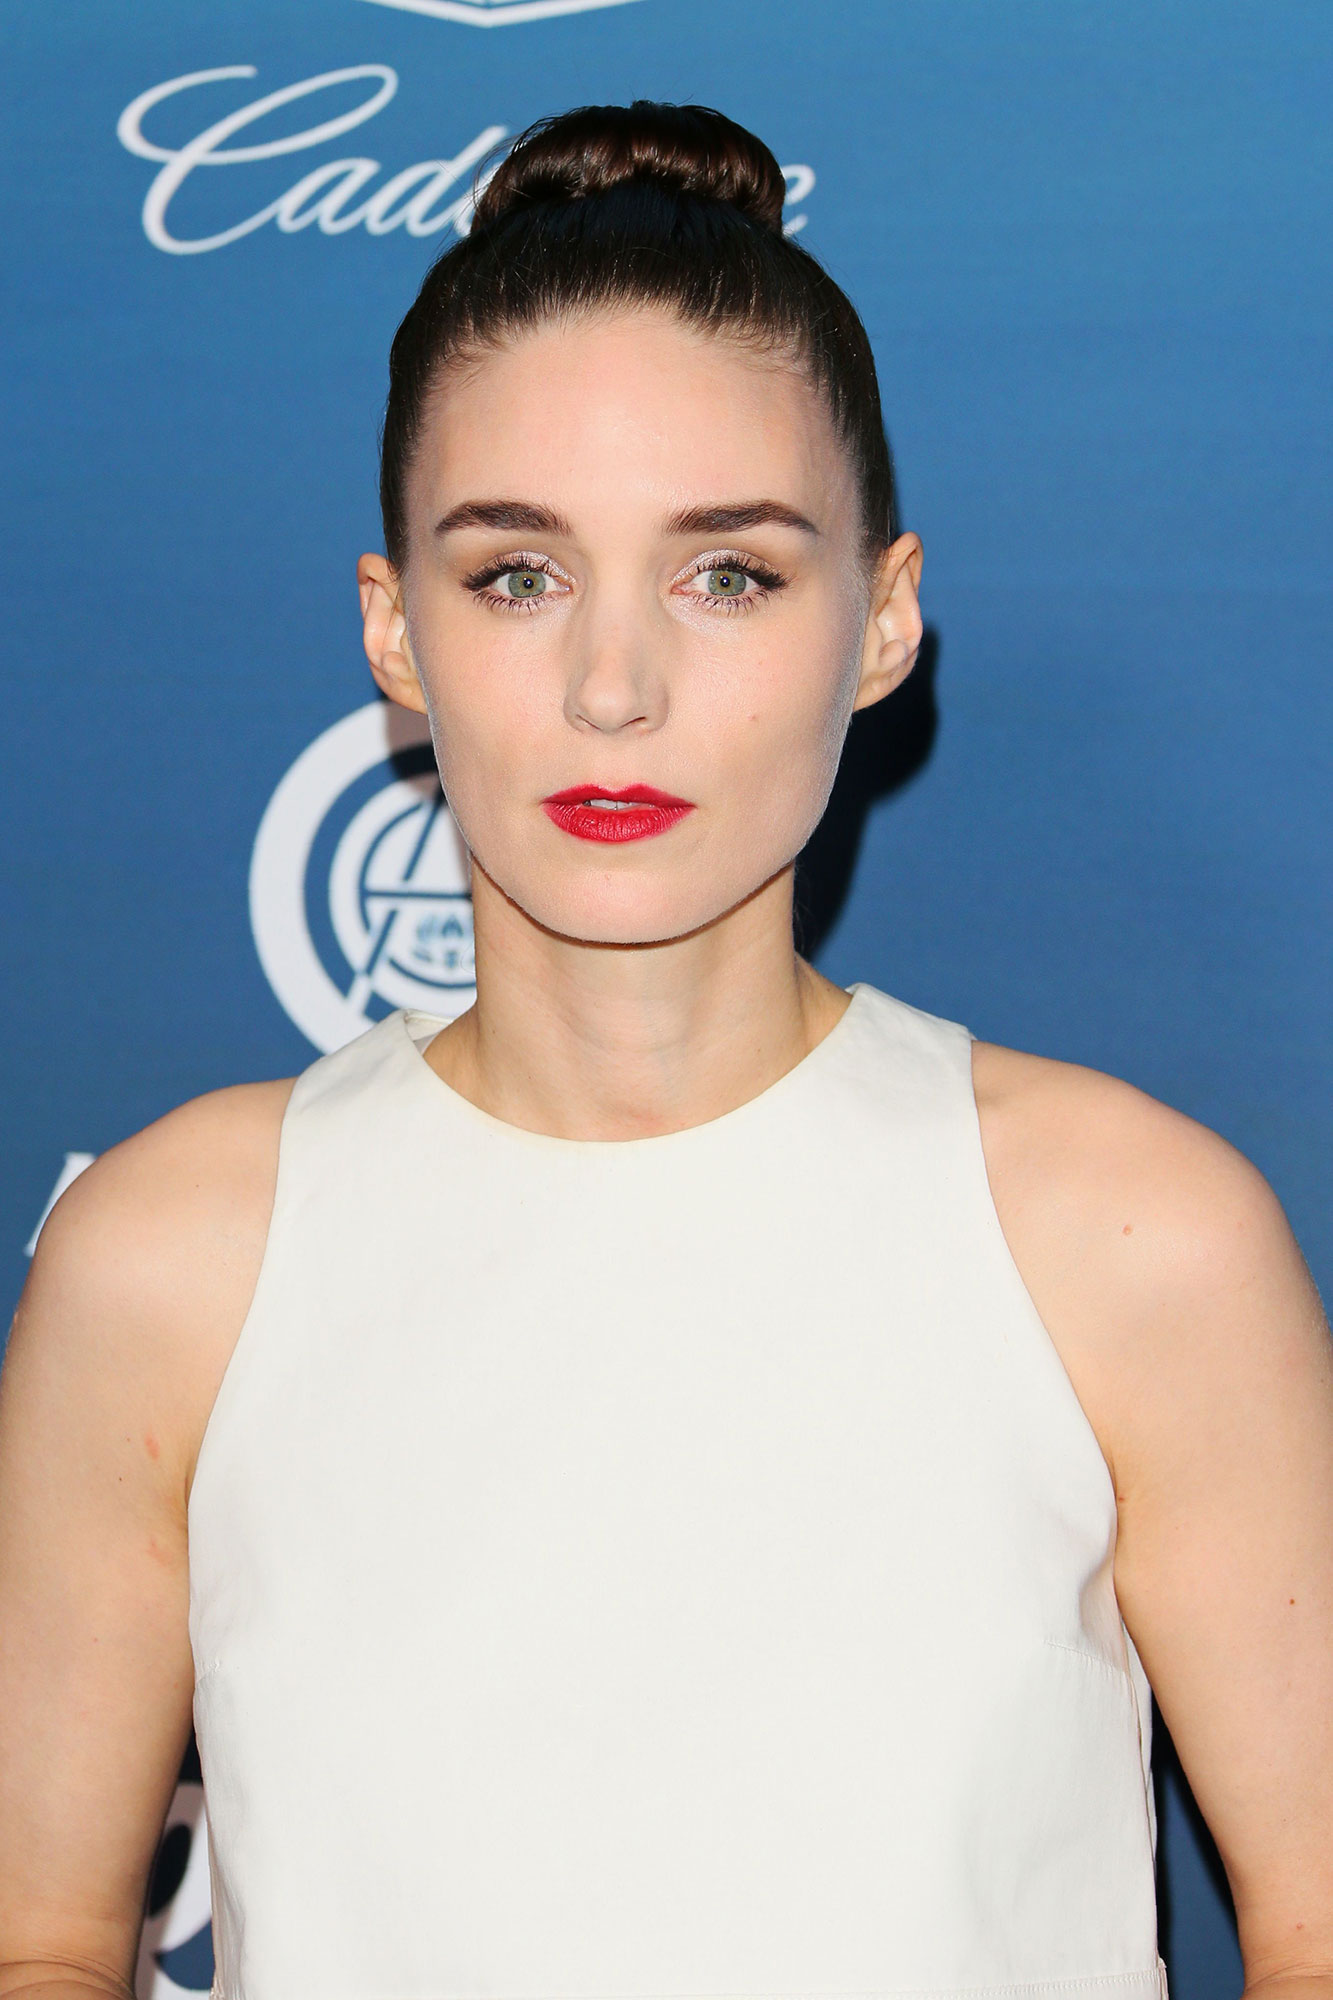 Rooney Mara - The Carol star appeared at the Art of Elysium Gala on January 5 in a crimson red lip that added the perfect pop of color against her otherwise sleek and clean look.